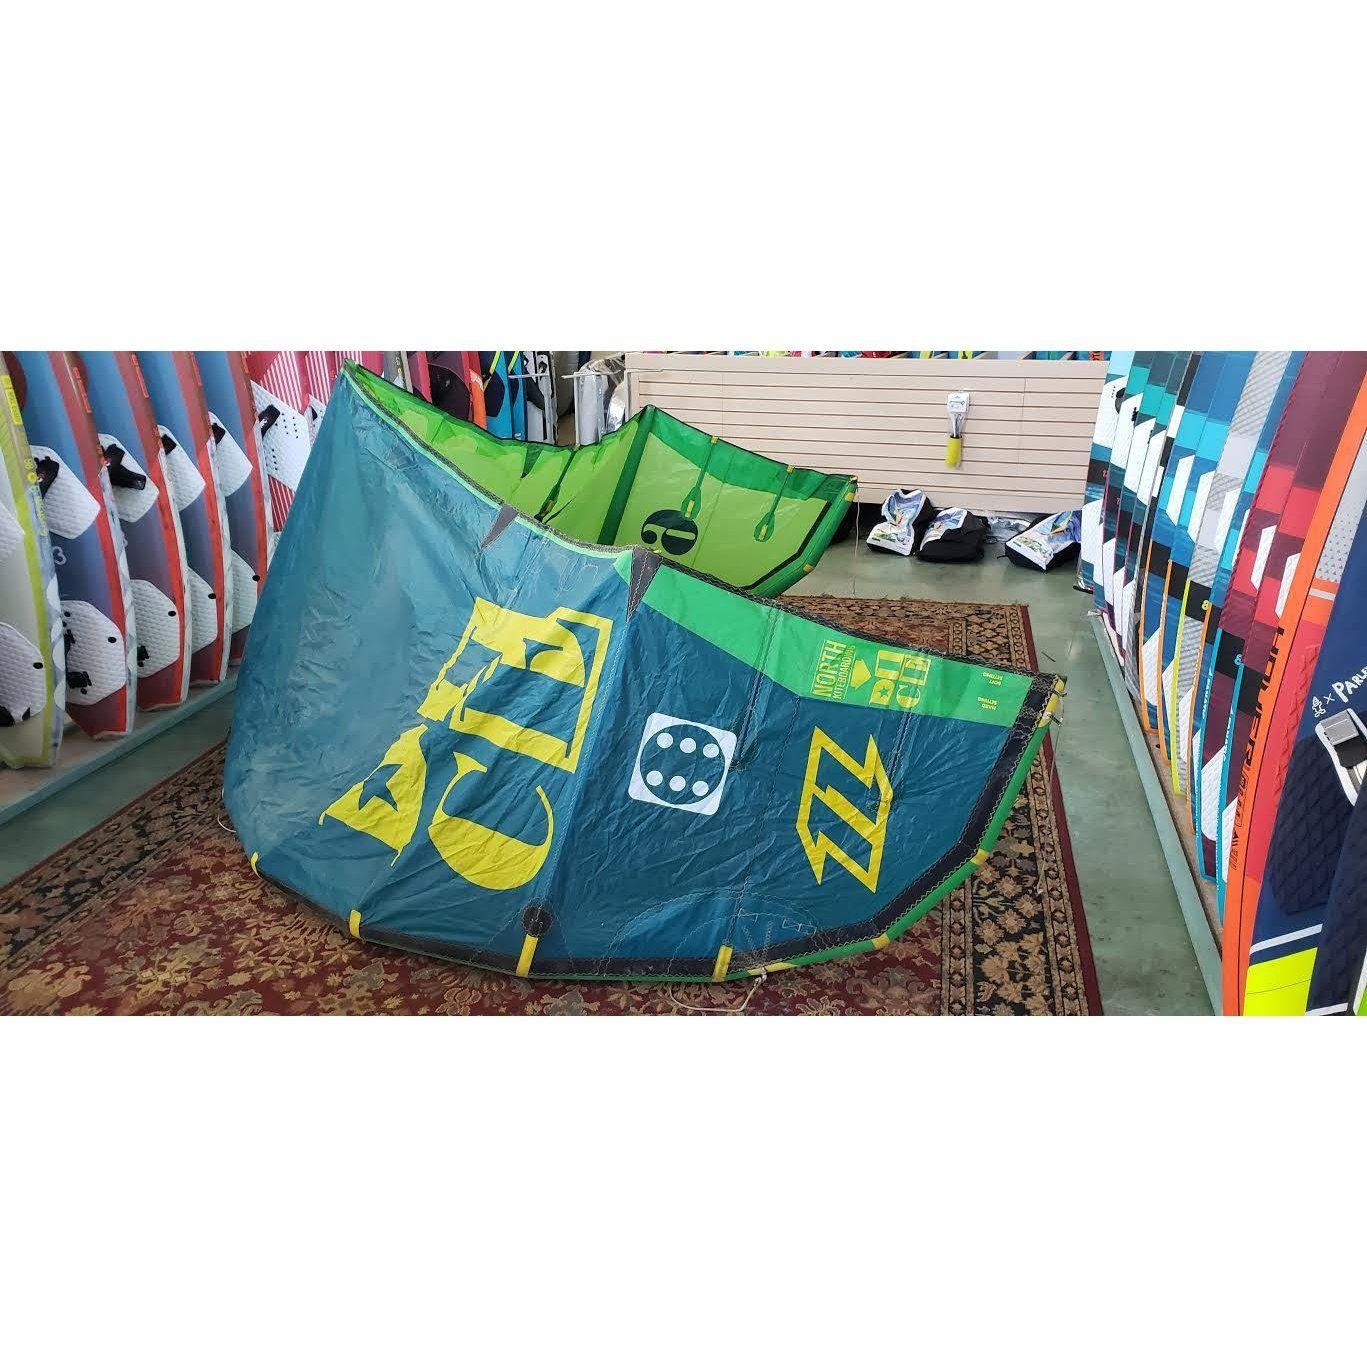 USED 2014 North Dice 6m B- condition $249.00-Big Winds